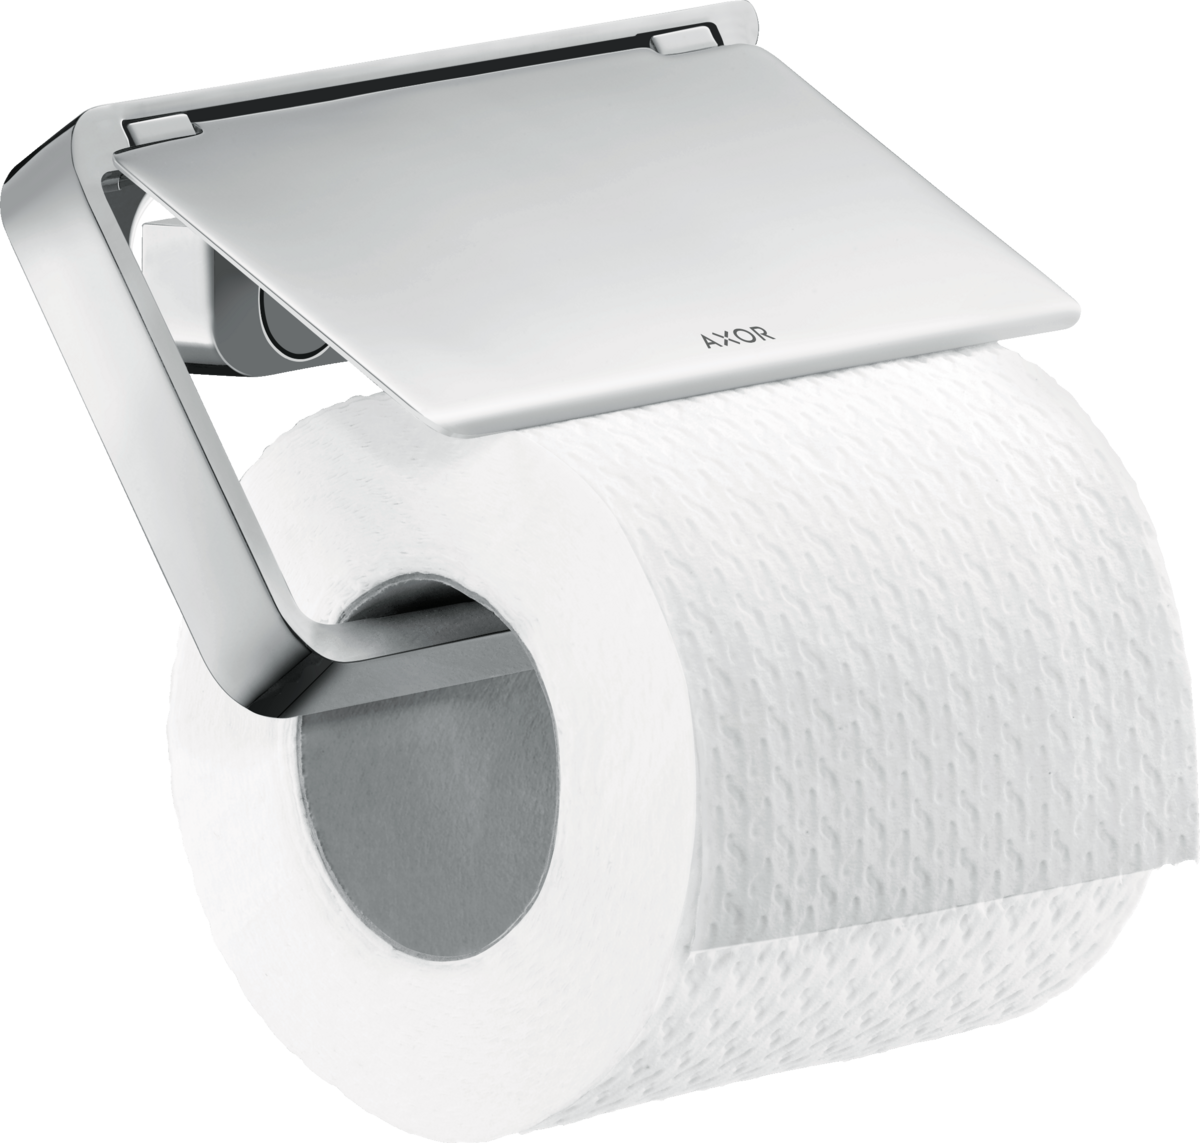 Axor Accessories Axor Universal Accessories Toilet Paper Holder With Cover Art No 42836000 Axor Us